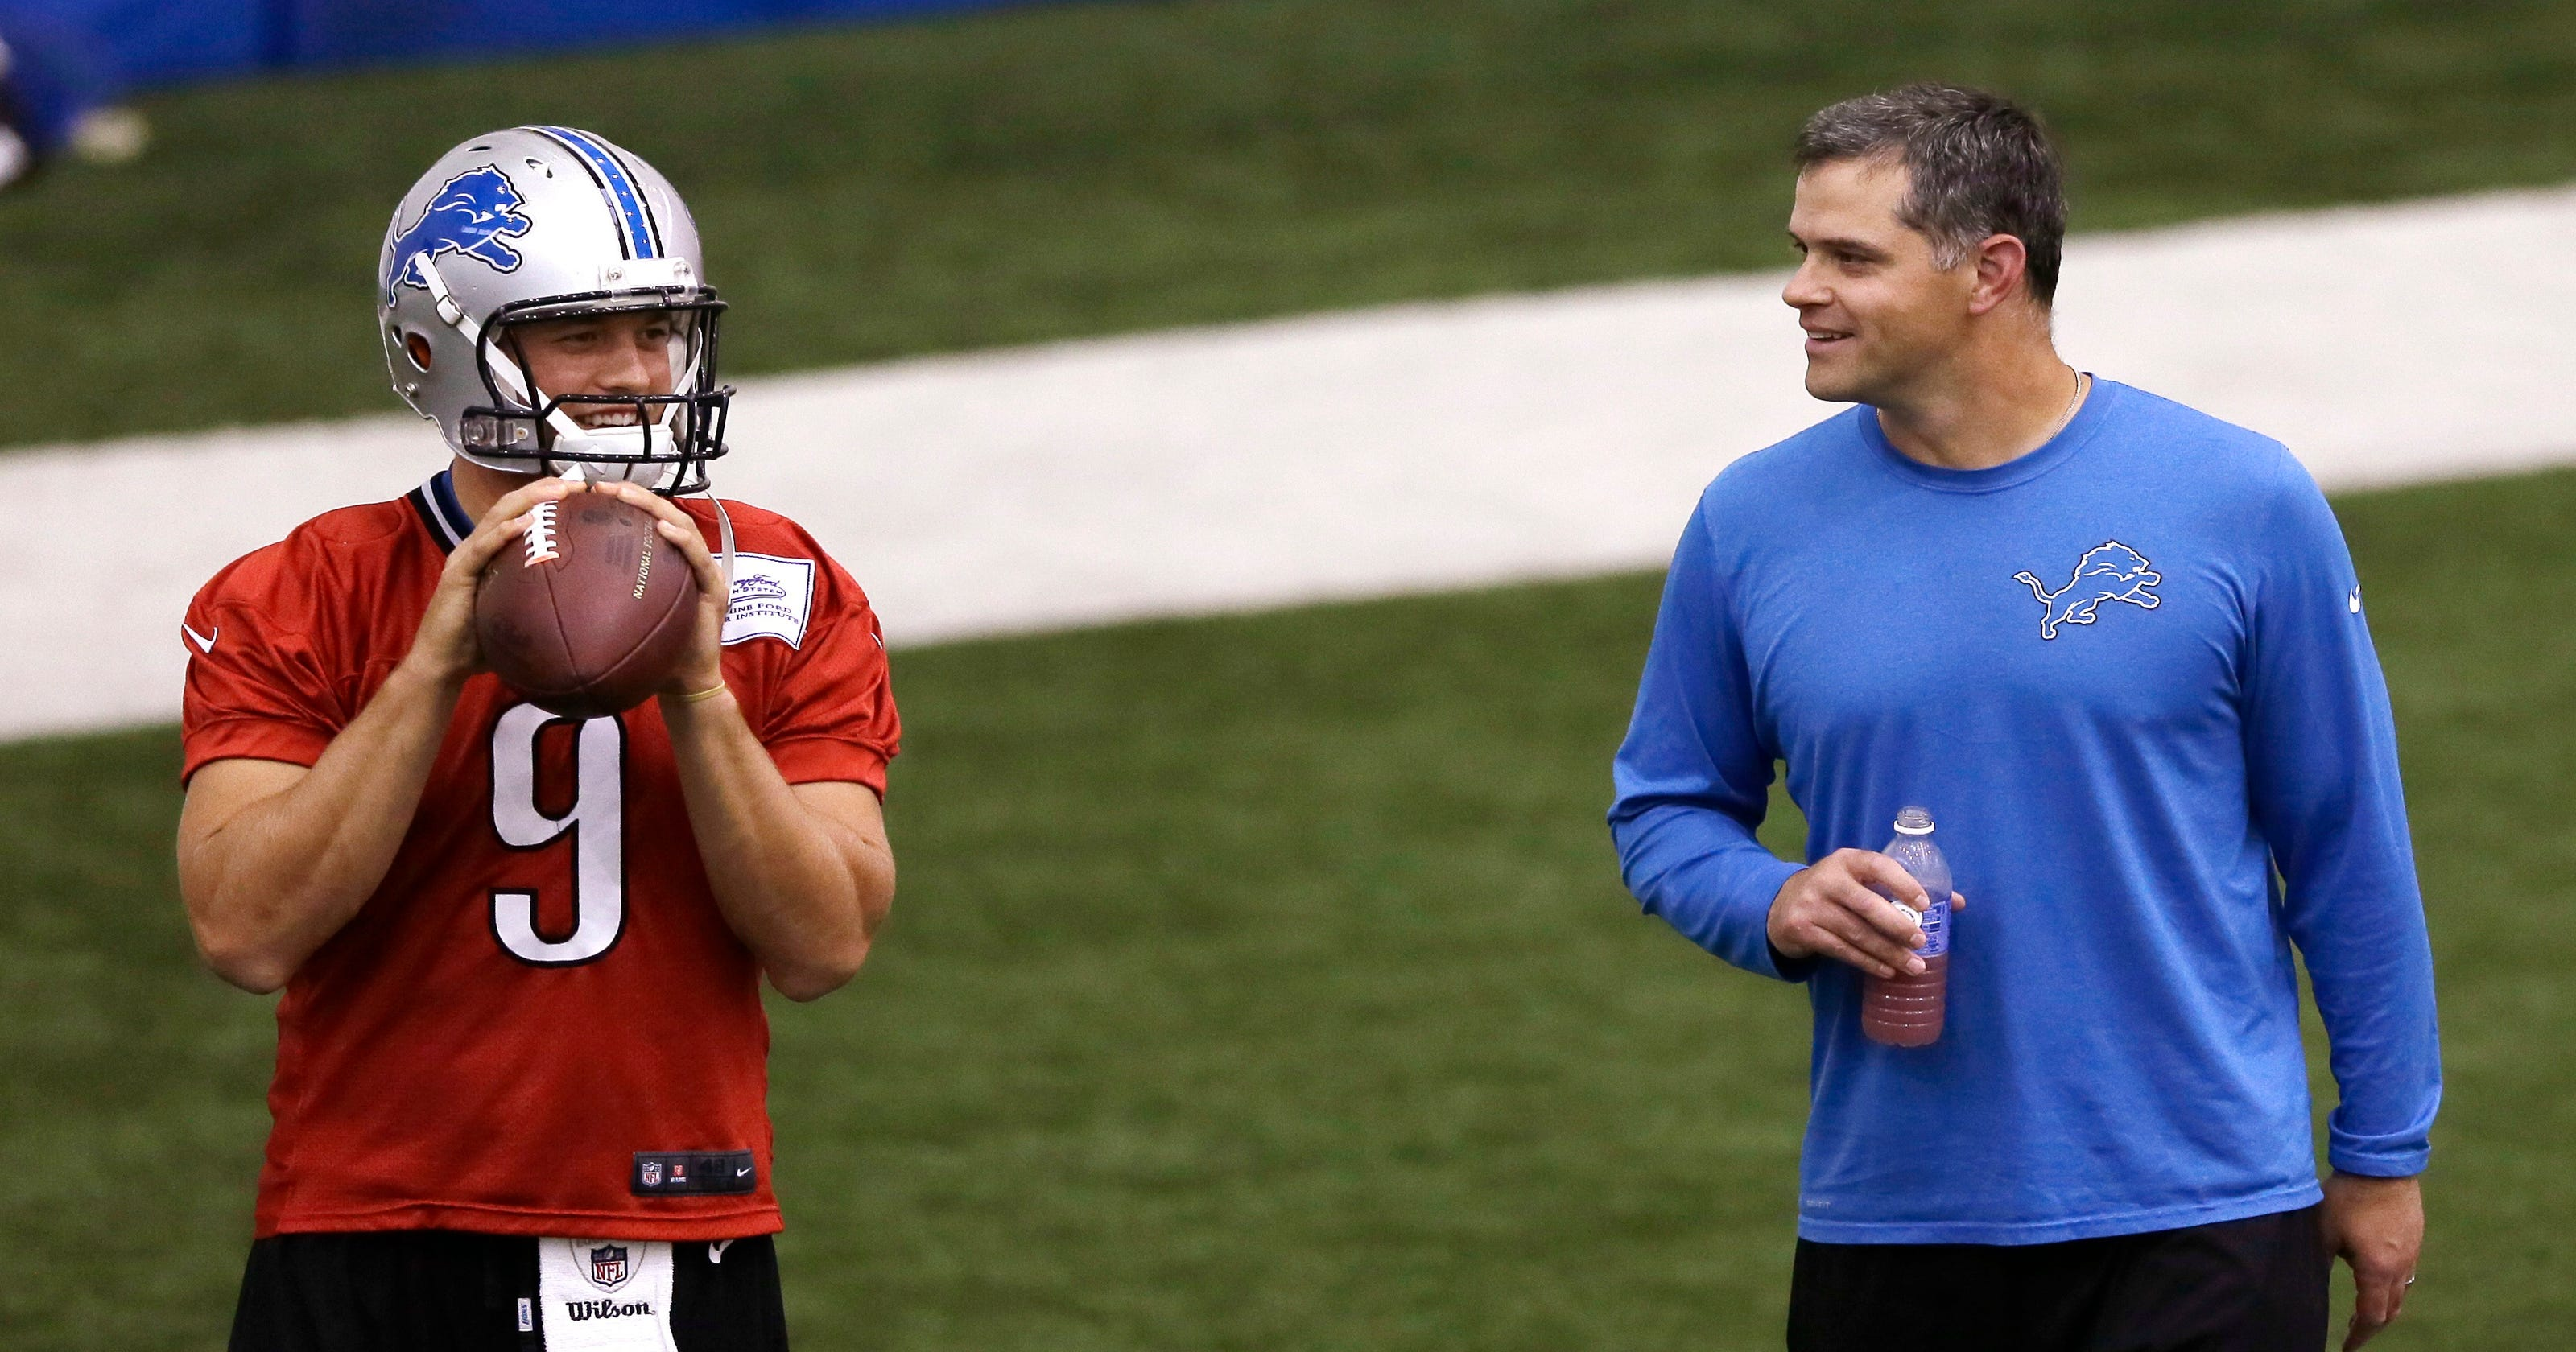 fb182f41ad4 New Lions assistant Joe Lombardi not worried about living up to name